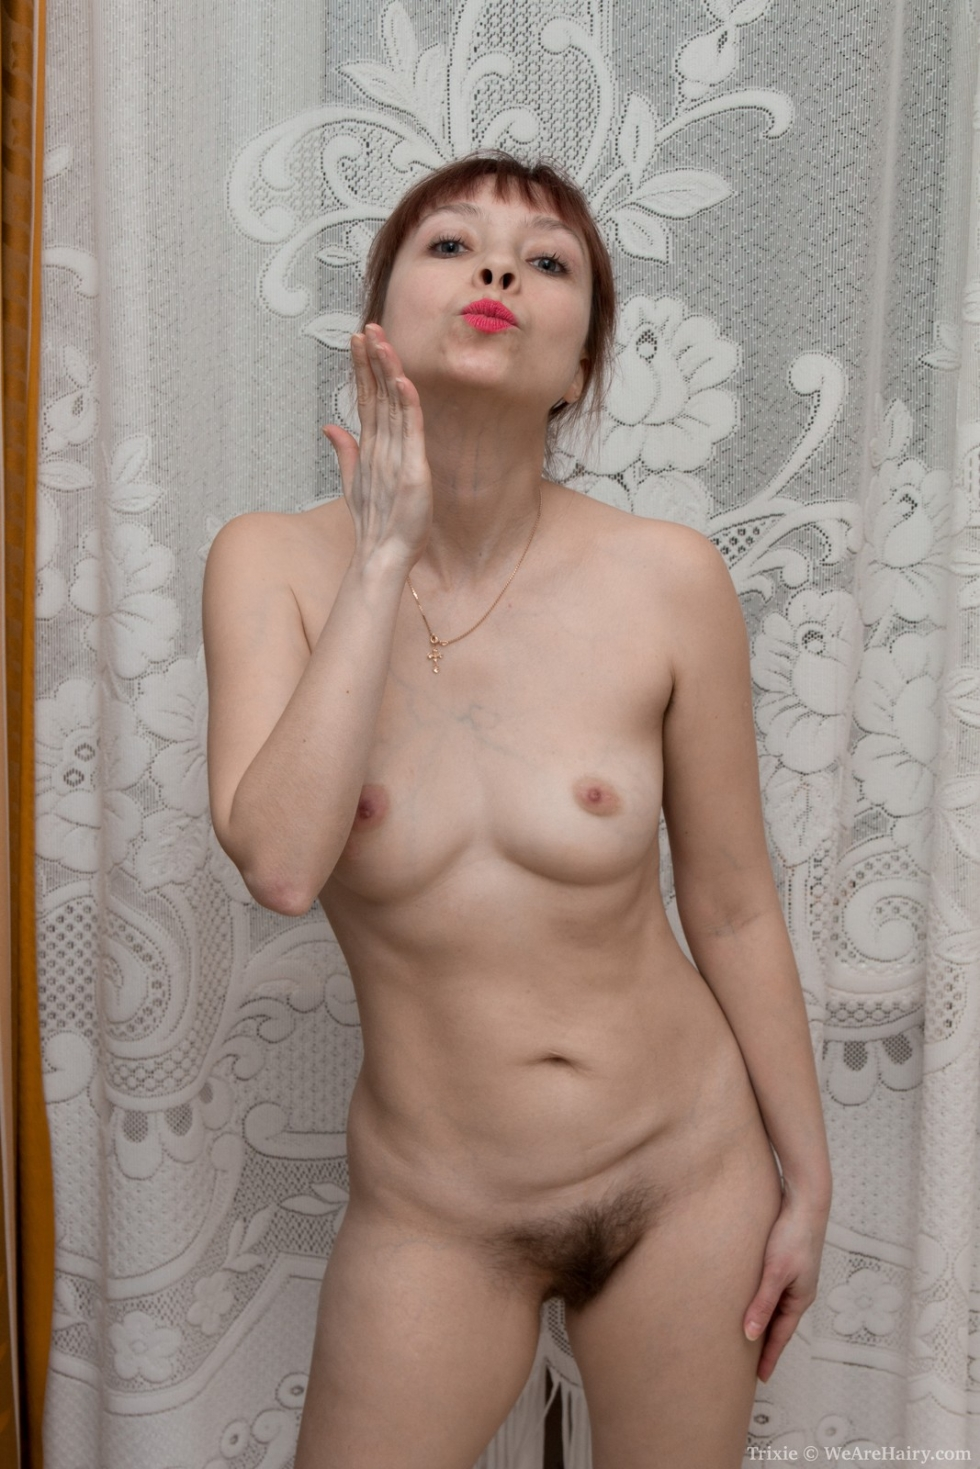 Trixie model nude valuable